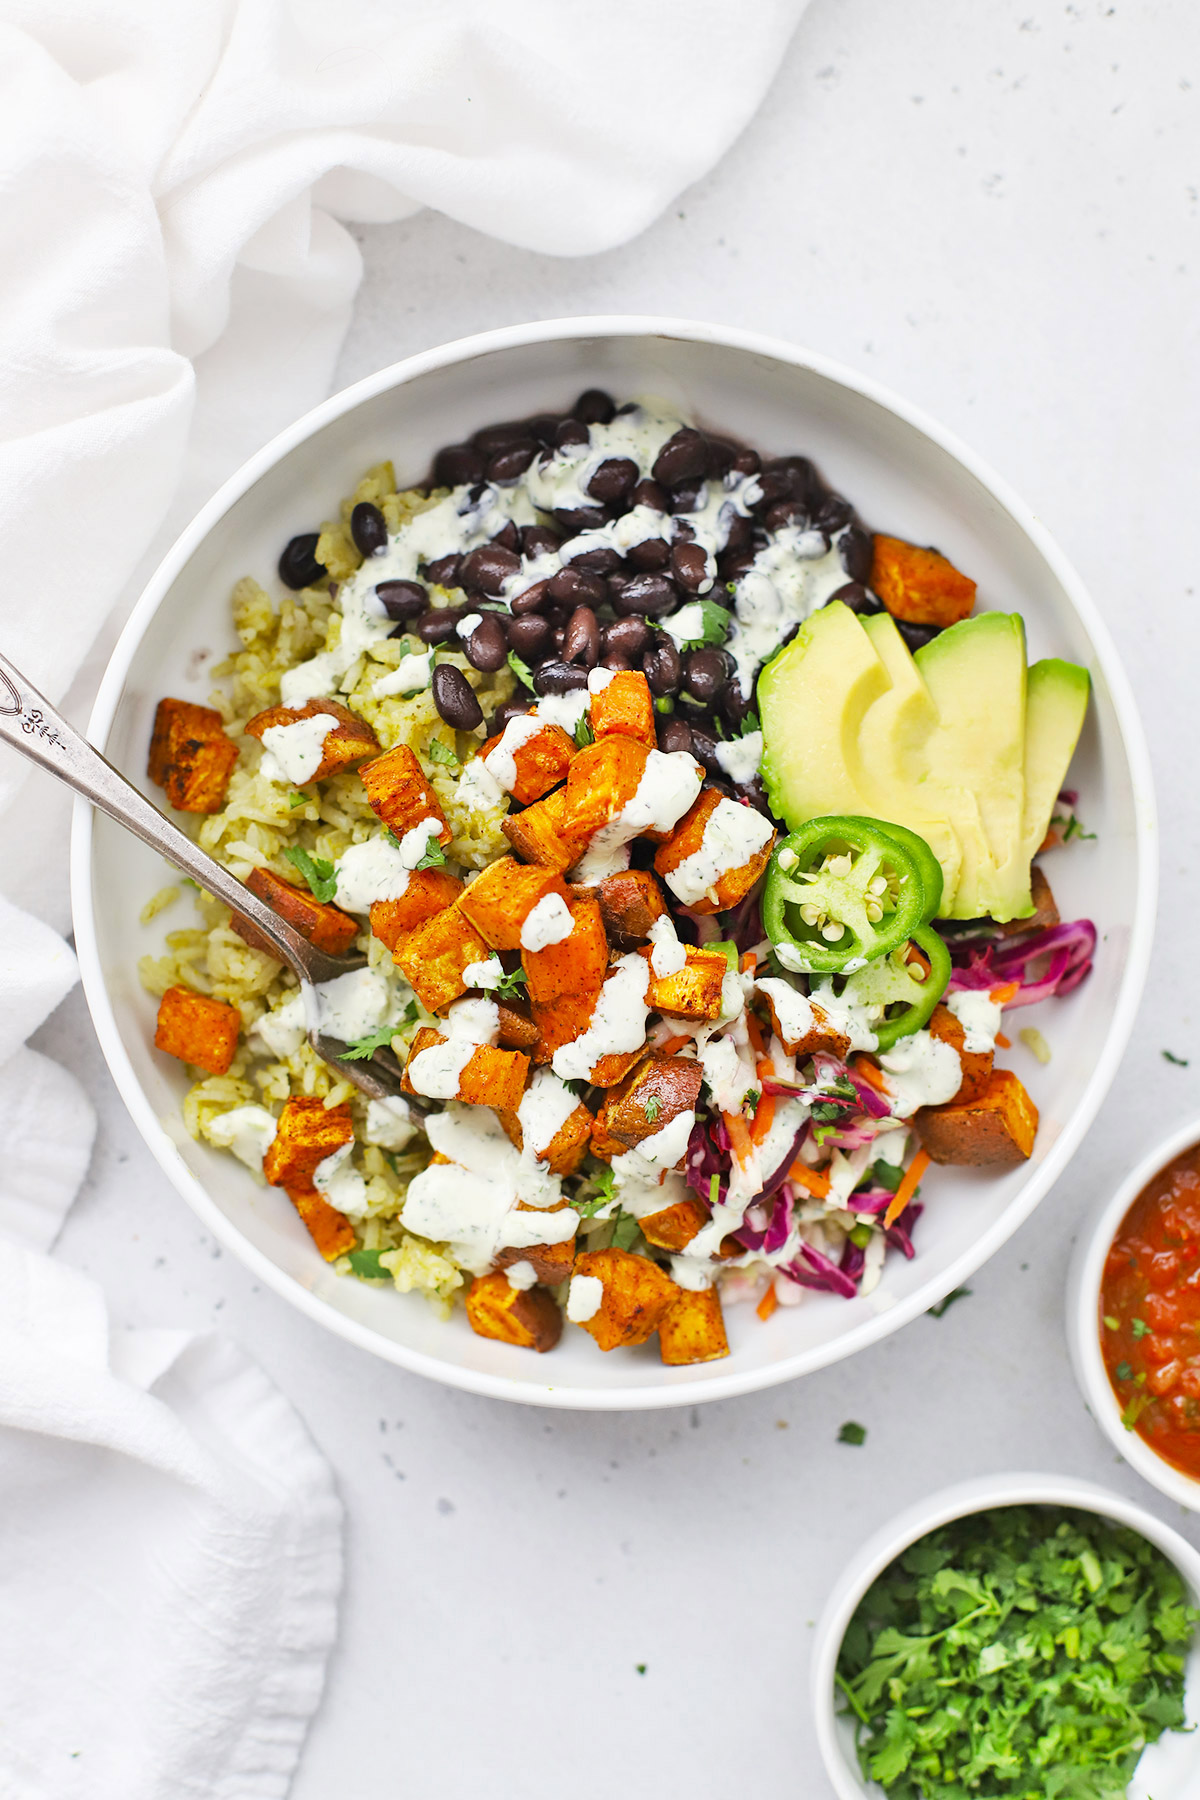 Overhead view of a Chipotle Sweet Potato Burrito Bowl with beans, rice, veggies, and tomatillo ranch dressing.